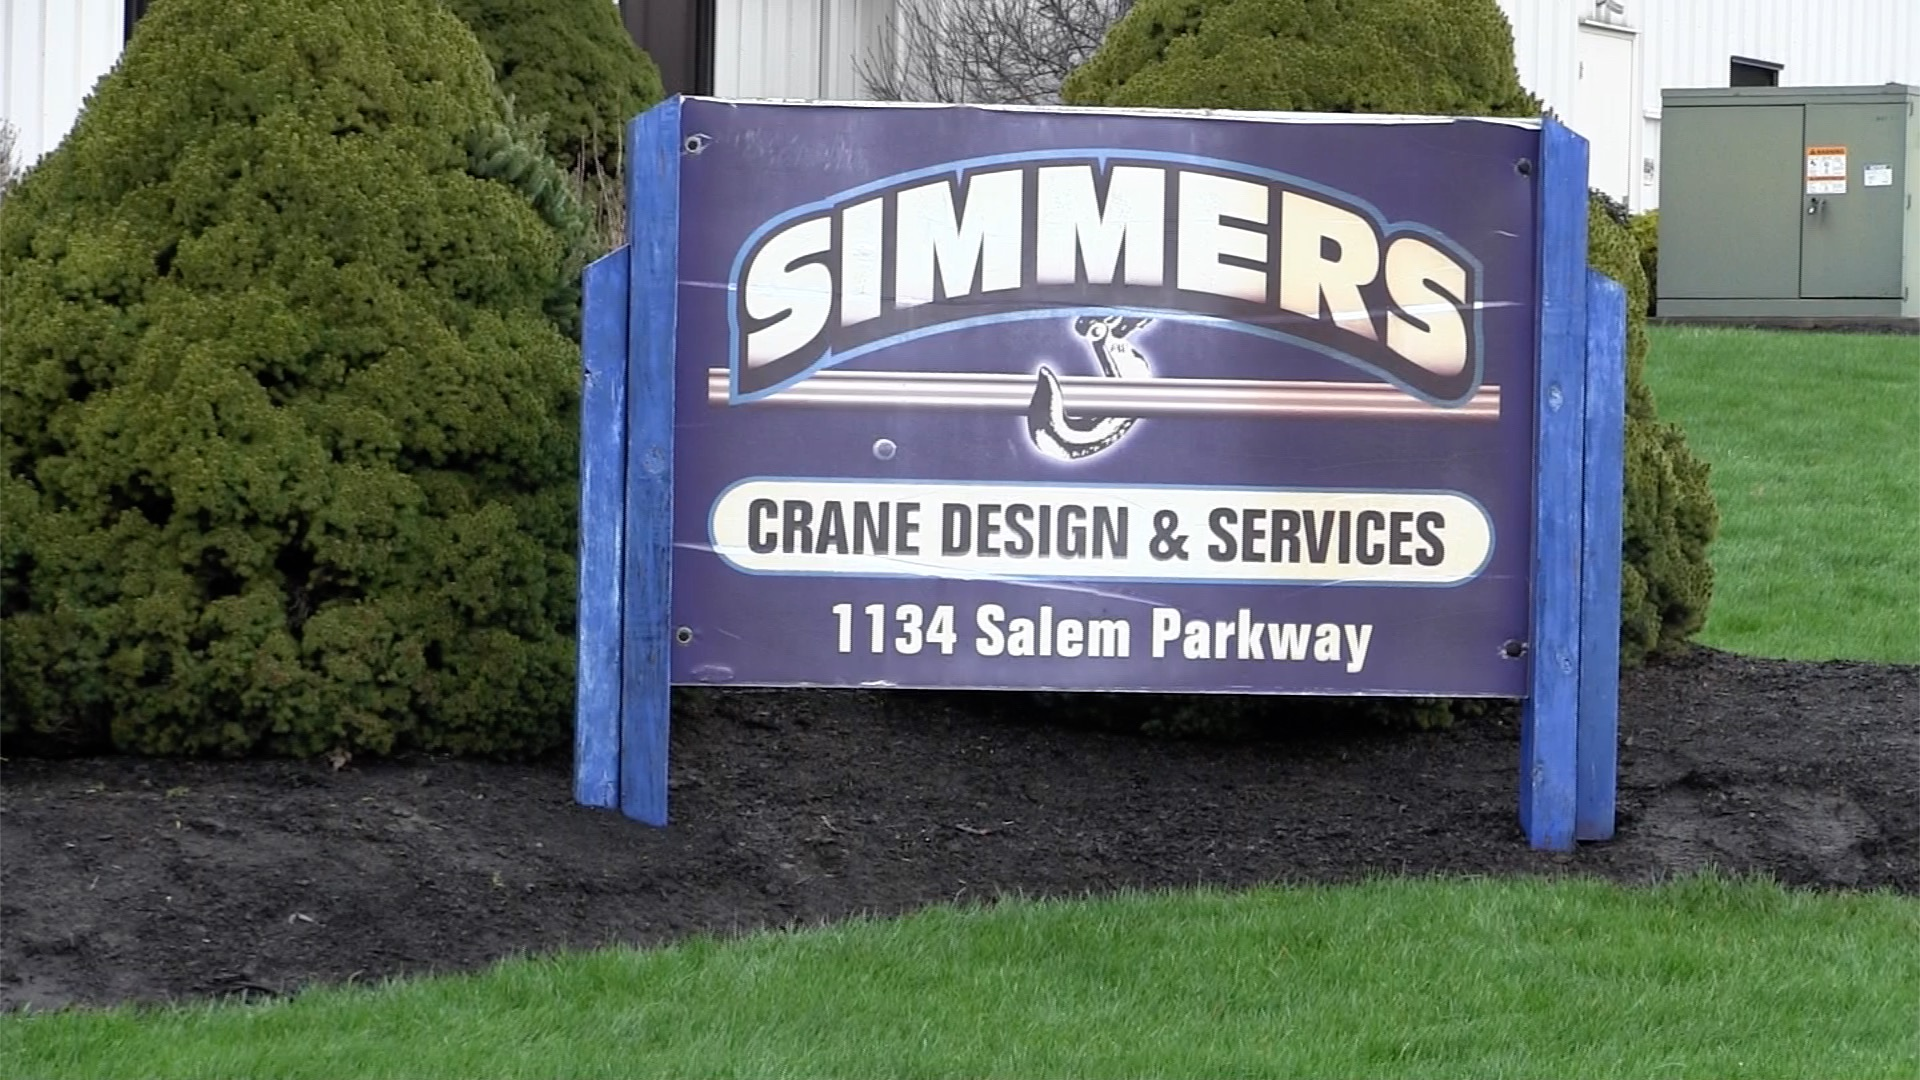 Simmers Crane Design & Services Pulls Employees From YSU